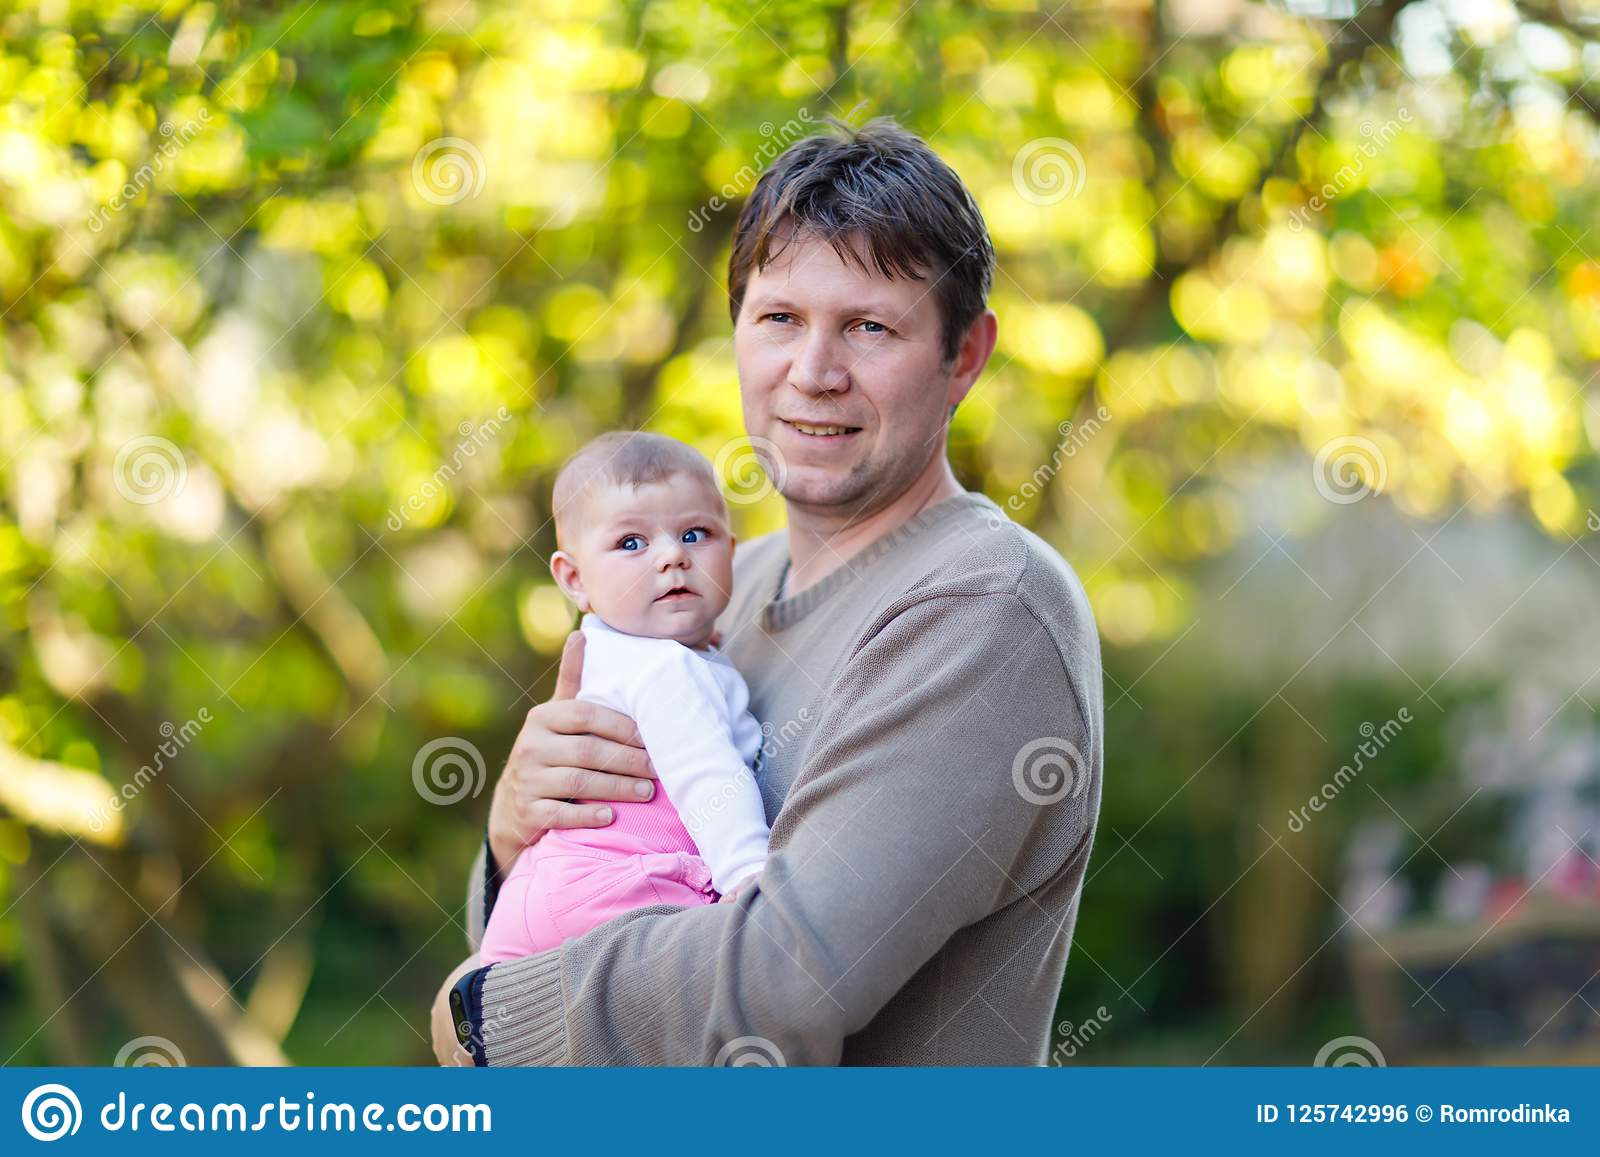 Very young little girl loves daddy